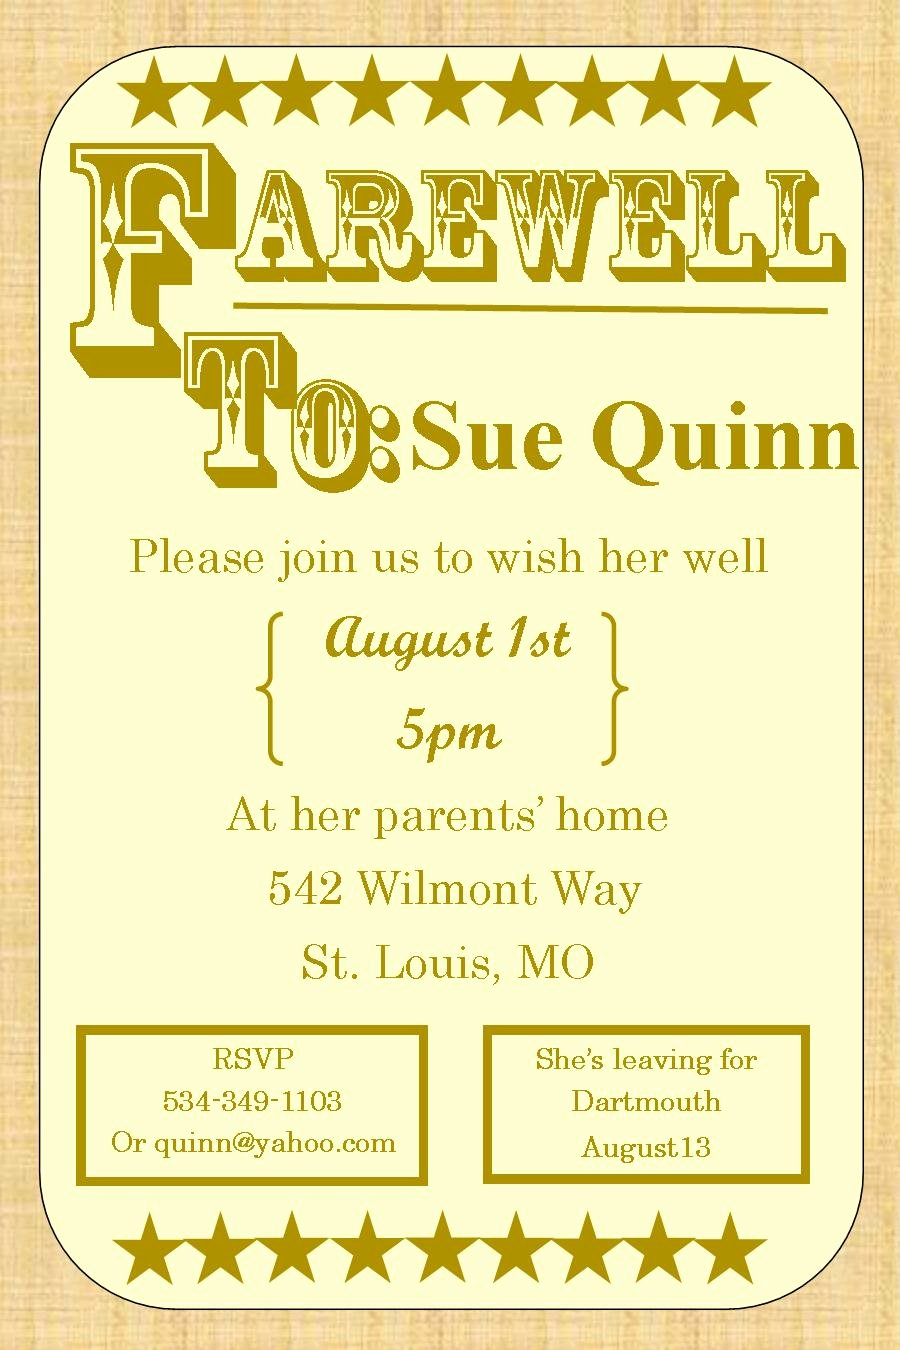 Going Away Party Invitation Lovely Going Away Party Invitations New Selections 2017